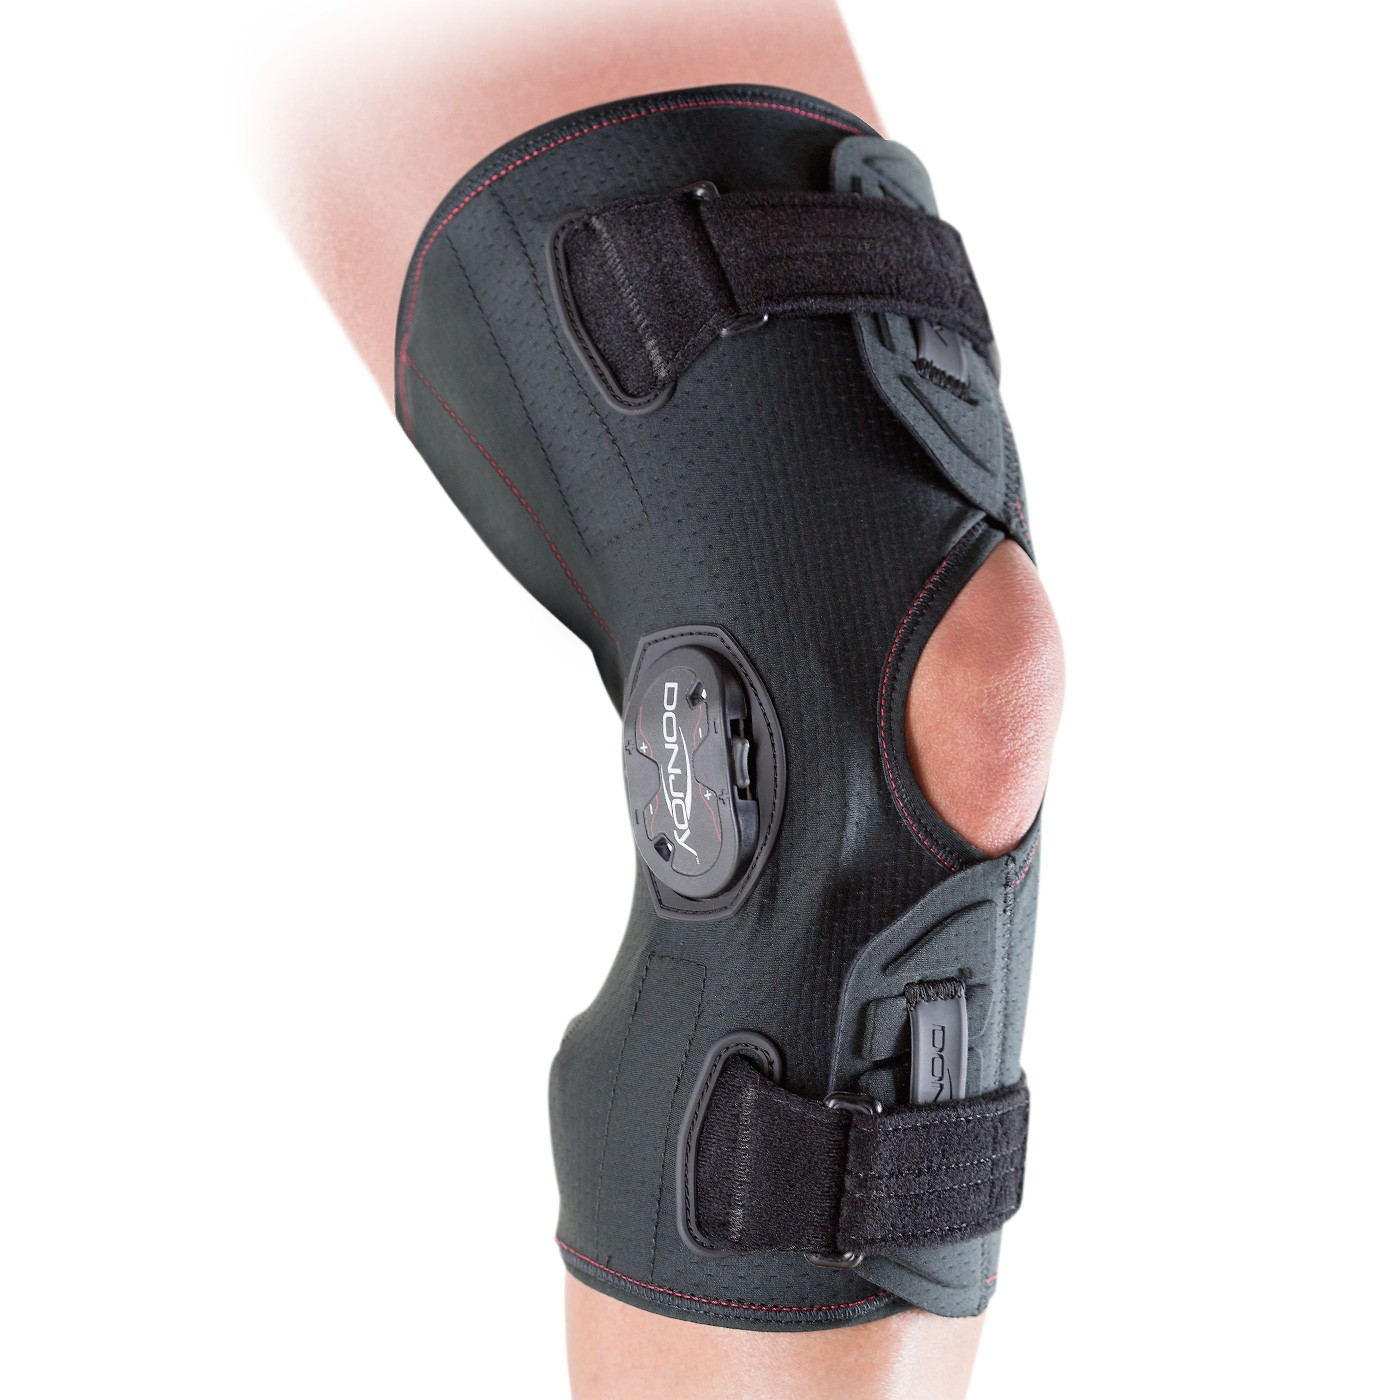 DonJoy Clima-Flex OA Knee Brace - On Skin